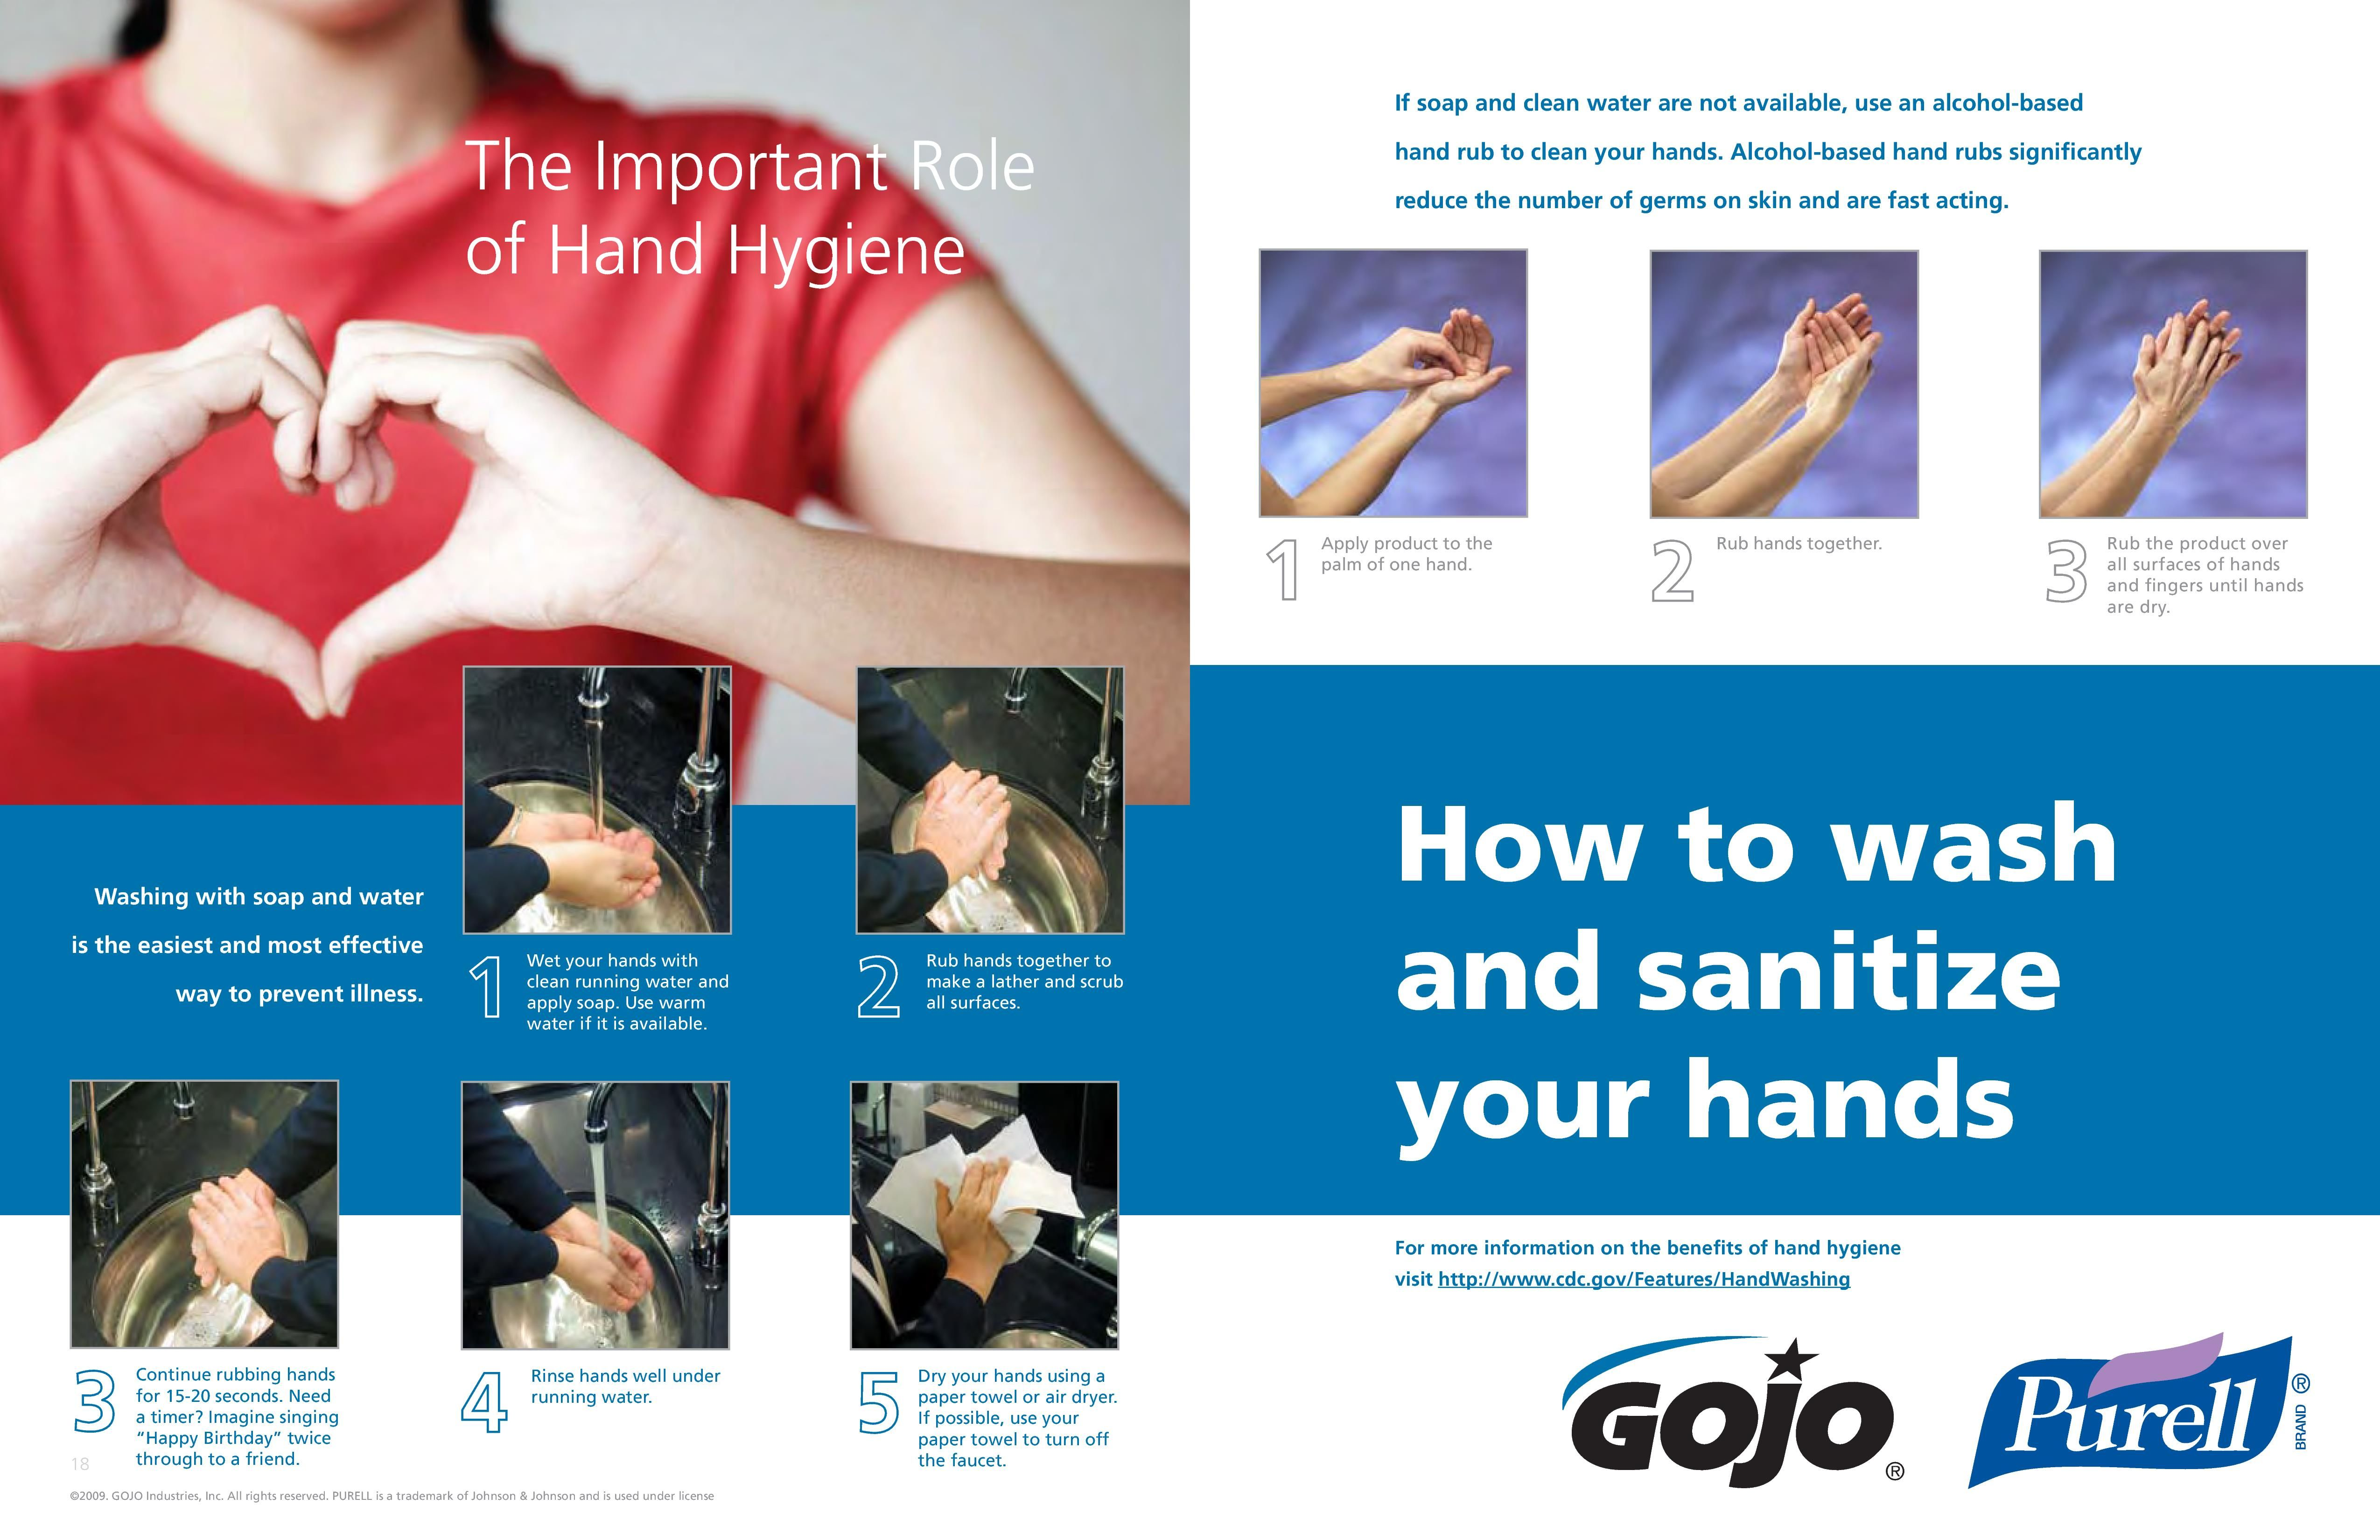 How To Wash And Sanitize Your Hands